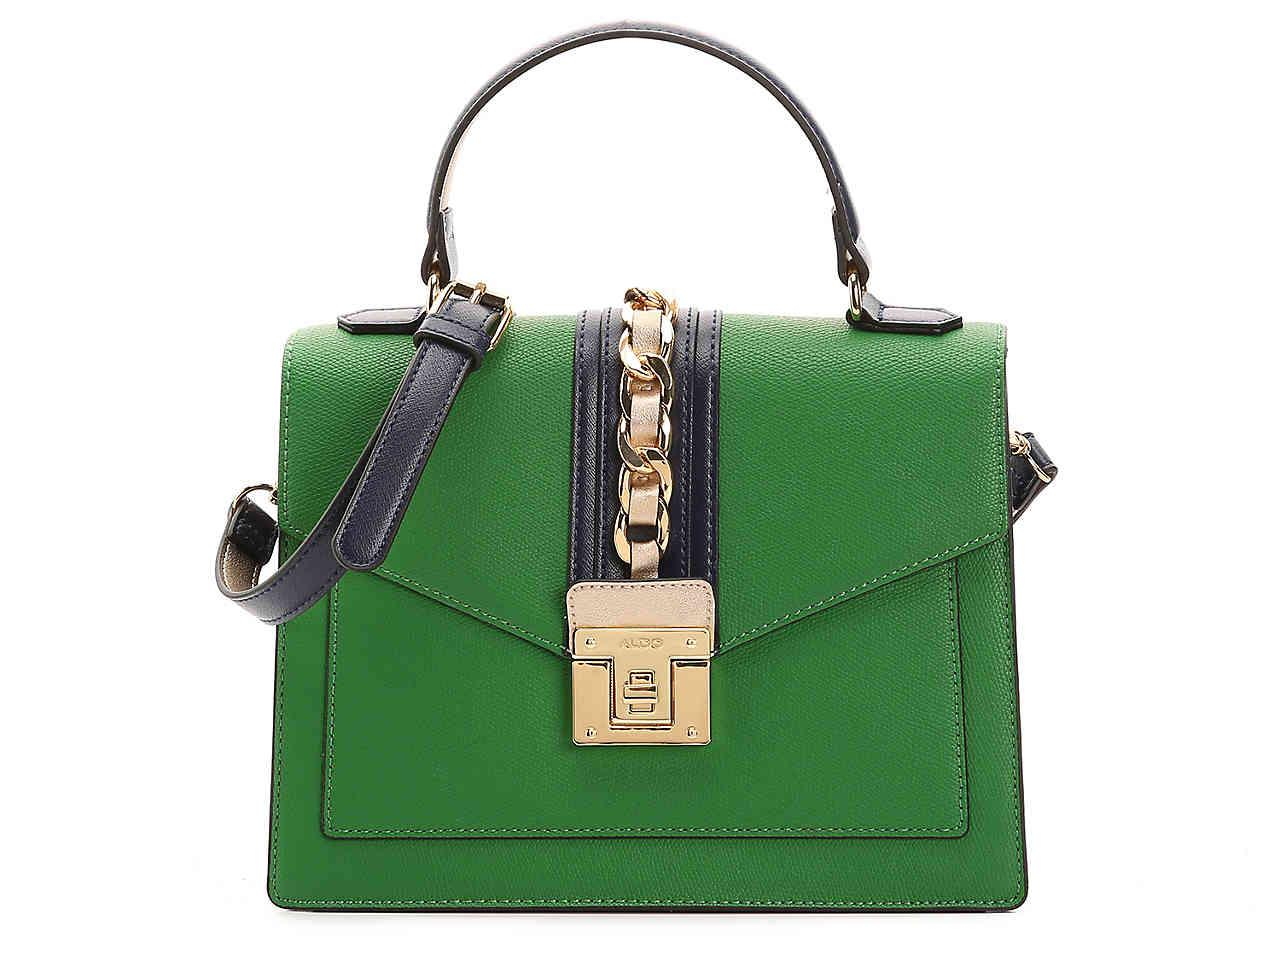 green satchel bag.jpg